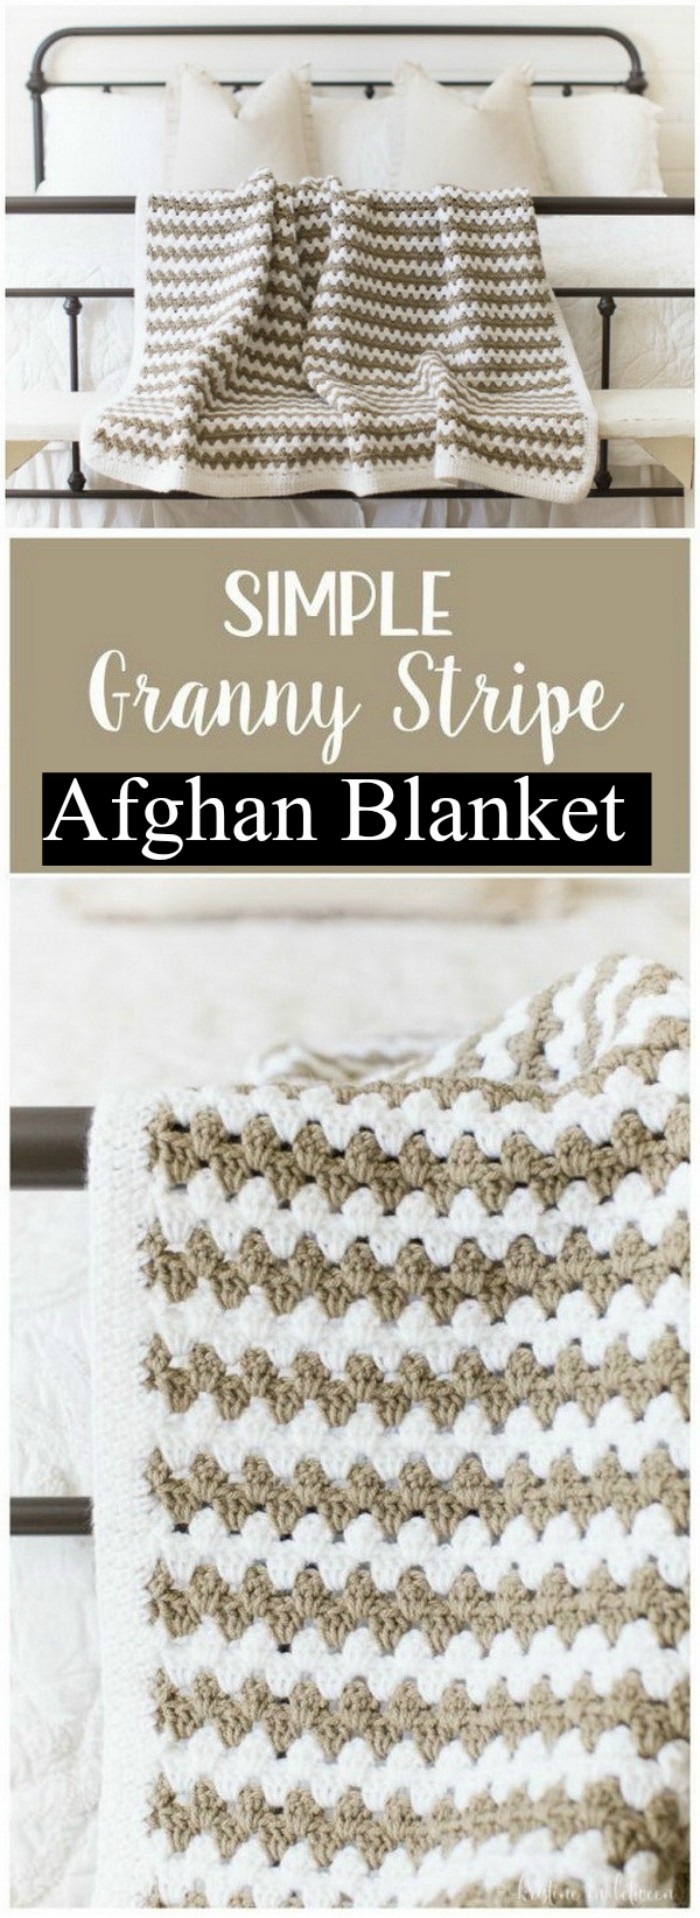 Simple Granny Stripe Afghan Blanket - All of these free crochet blanket patterns are so much beautiful and really easy. Most of them are so much less time-consuming and even they can be completed in less than one week. #Blankets #crochetblanket #crochetblanketpatterns #freecrochetblanketpattern #freecrochetblanket